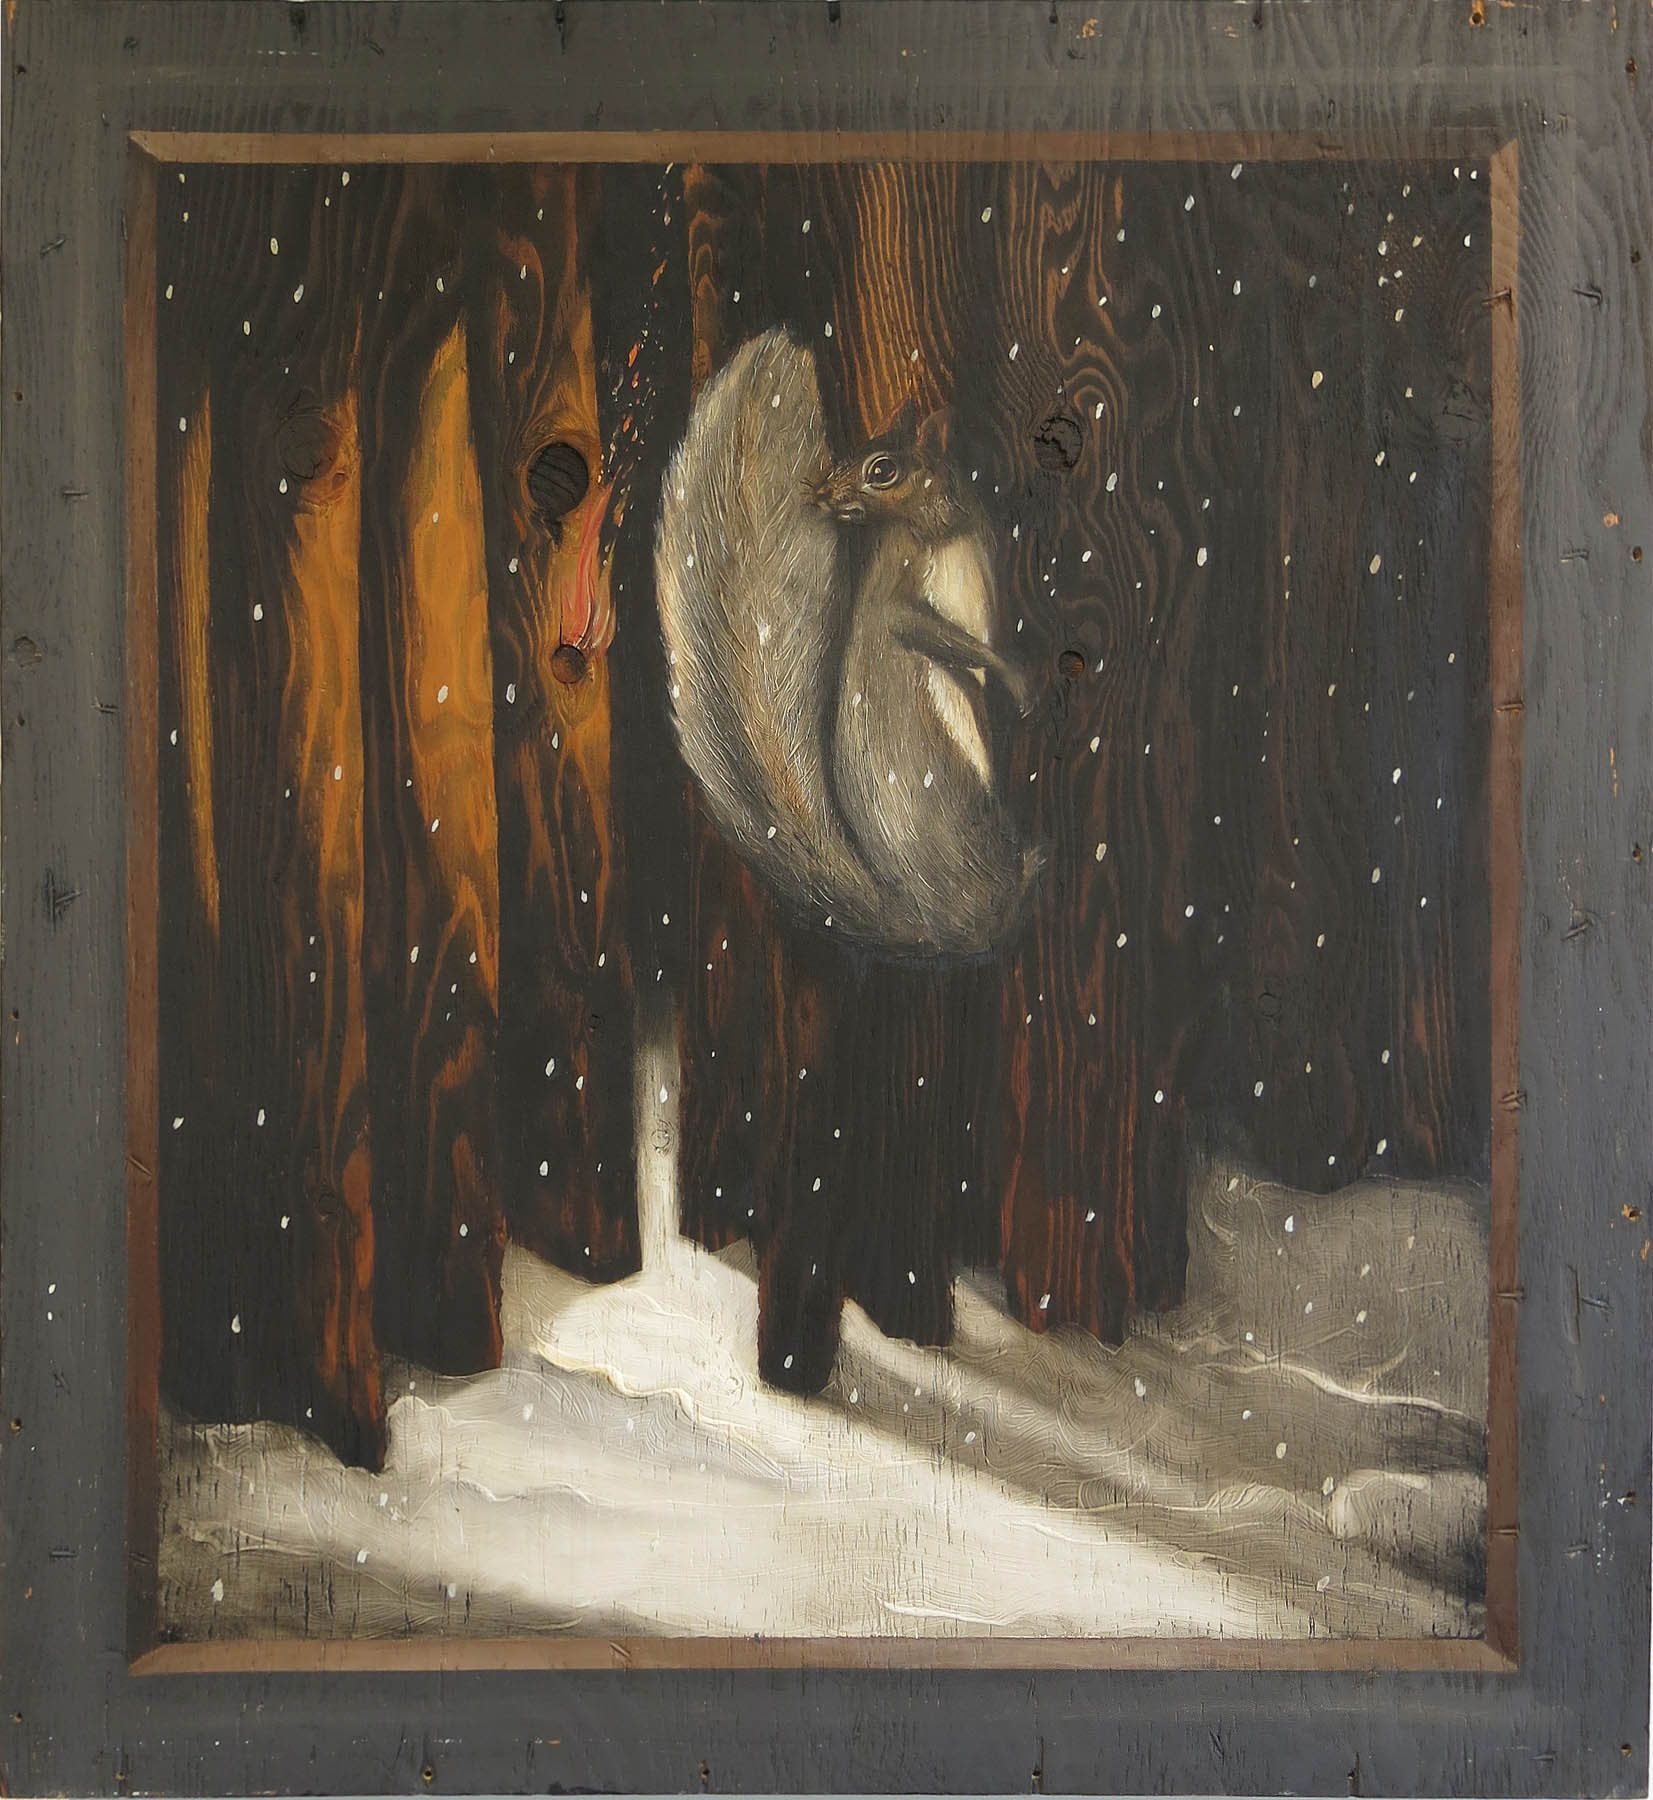 Robert Helm,  Fire Starter,  1985, Oil on wood, 36h x 33w in.